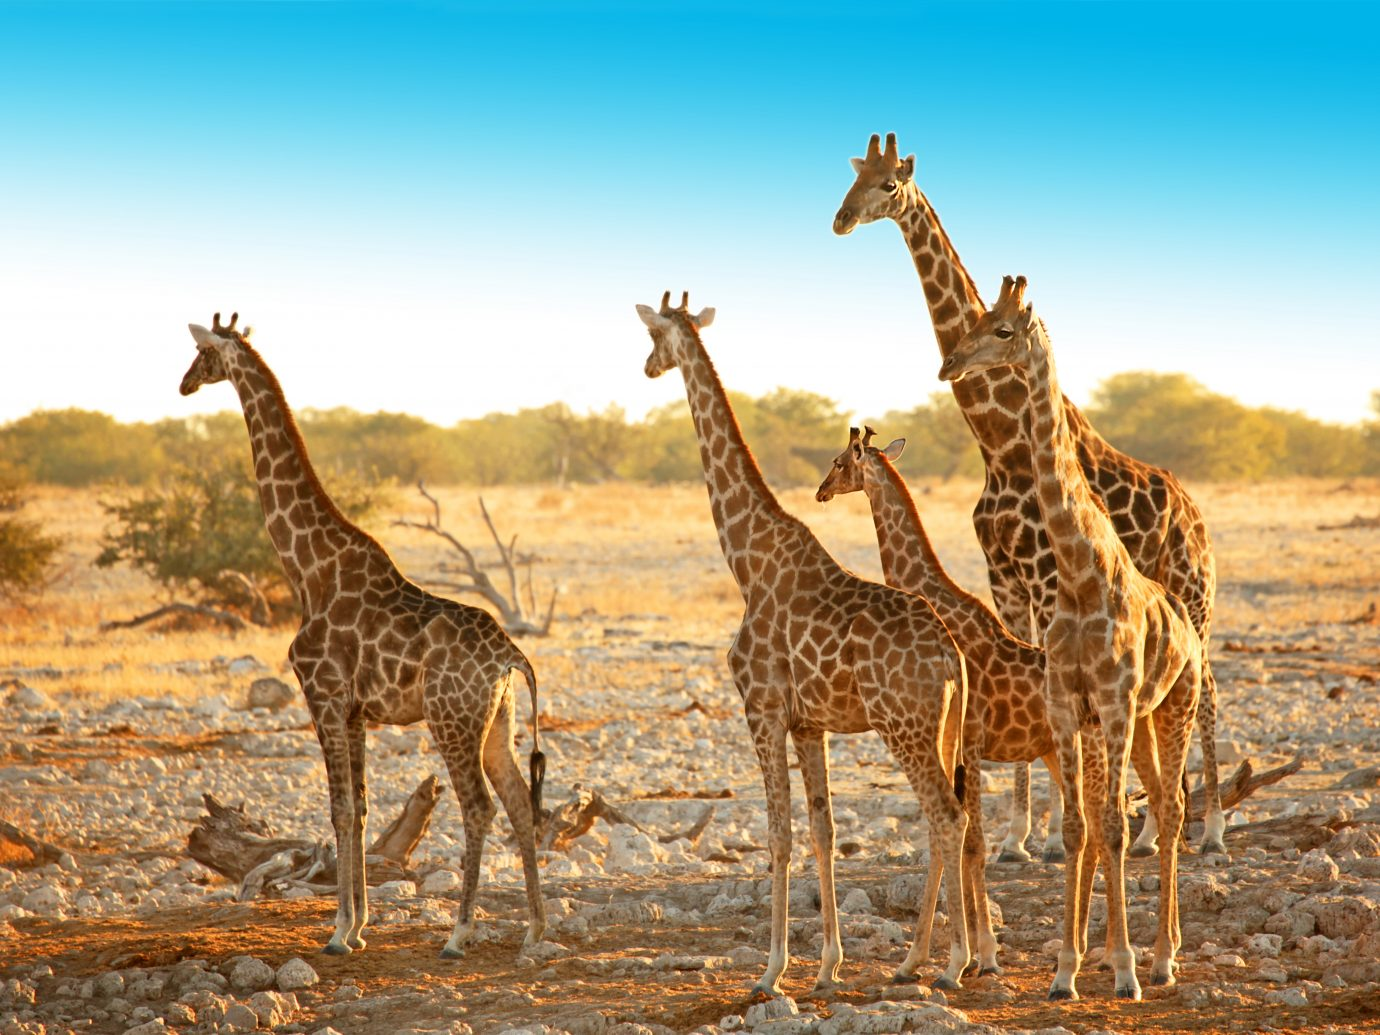 Family of five wild giraffes is standing in a dry savannah landscape near Okaukuejo waterhole in Etosha National Park in Namibia, Africa. The group consists of young and older animals of various ages and size.